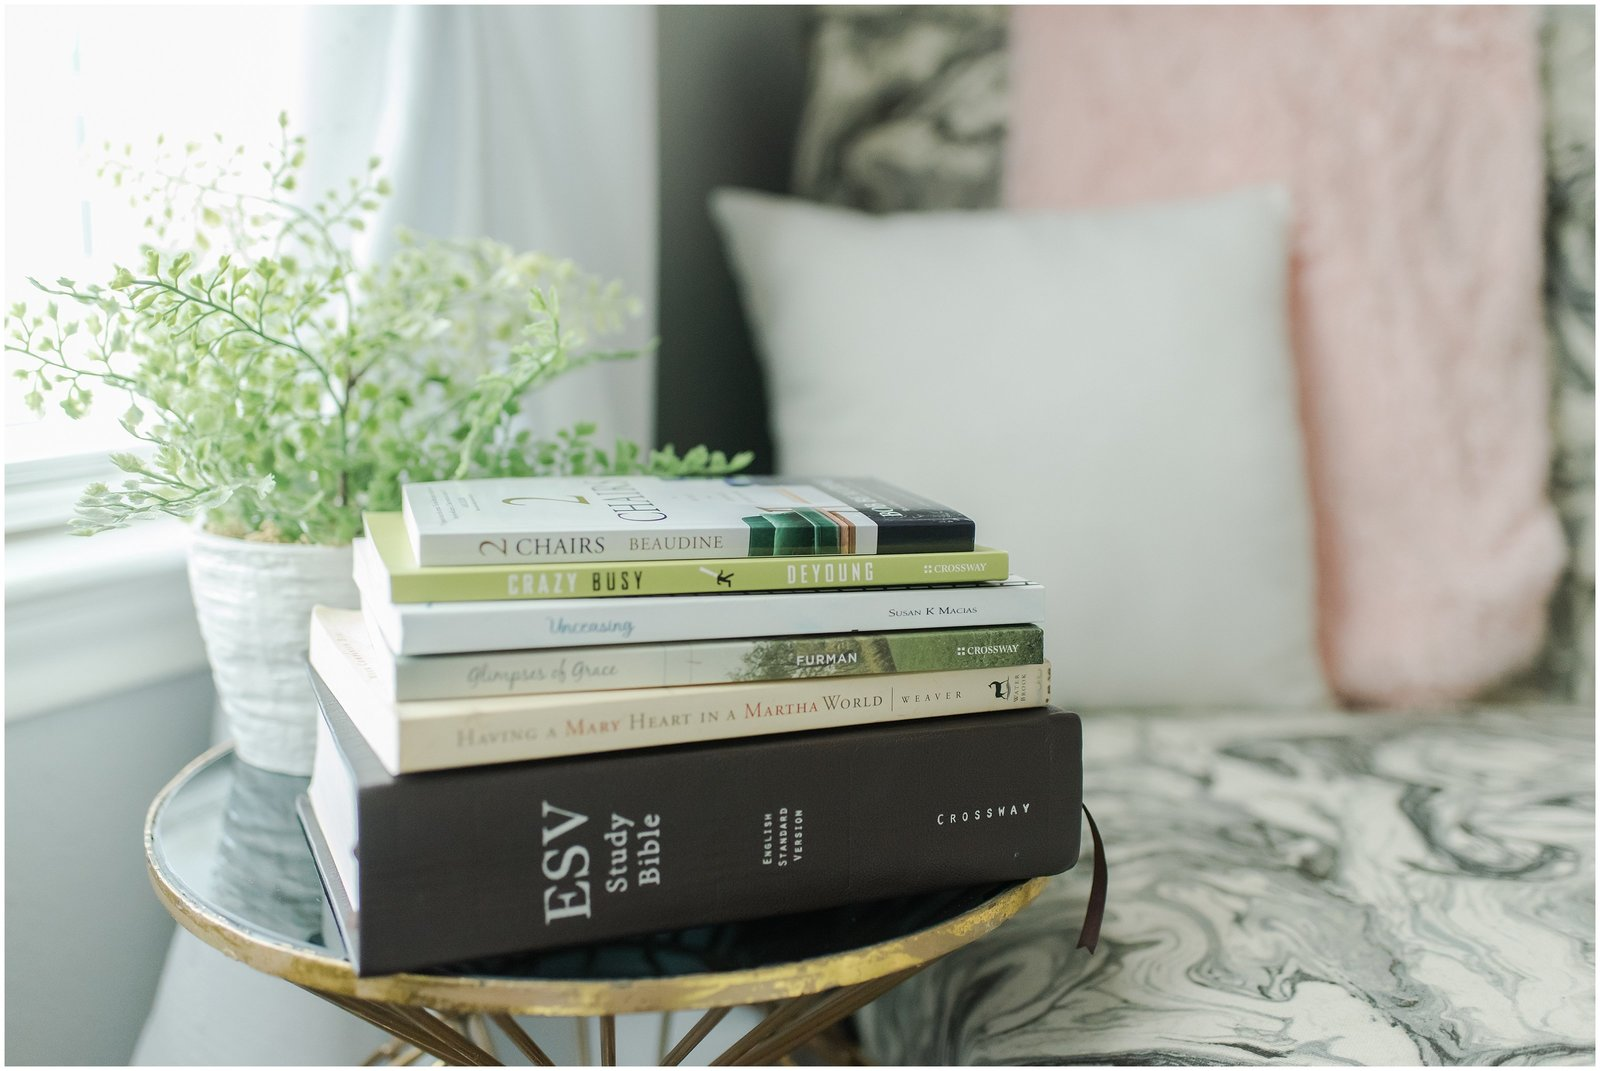 Books on end table